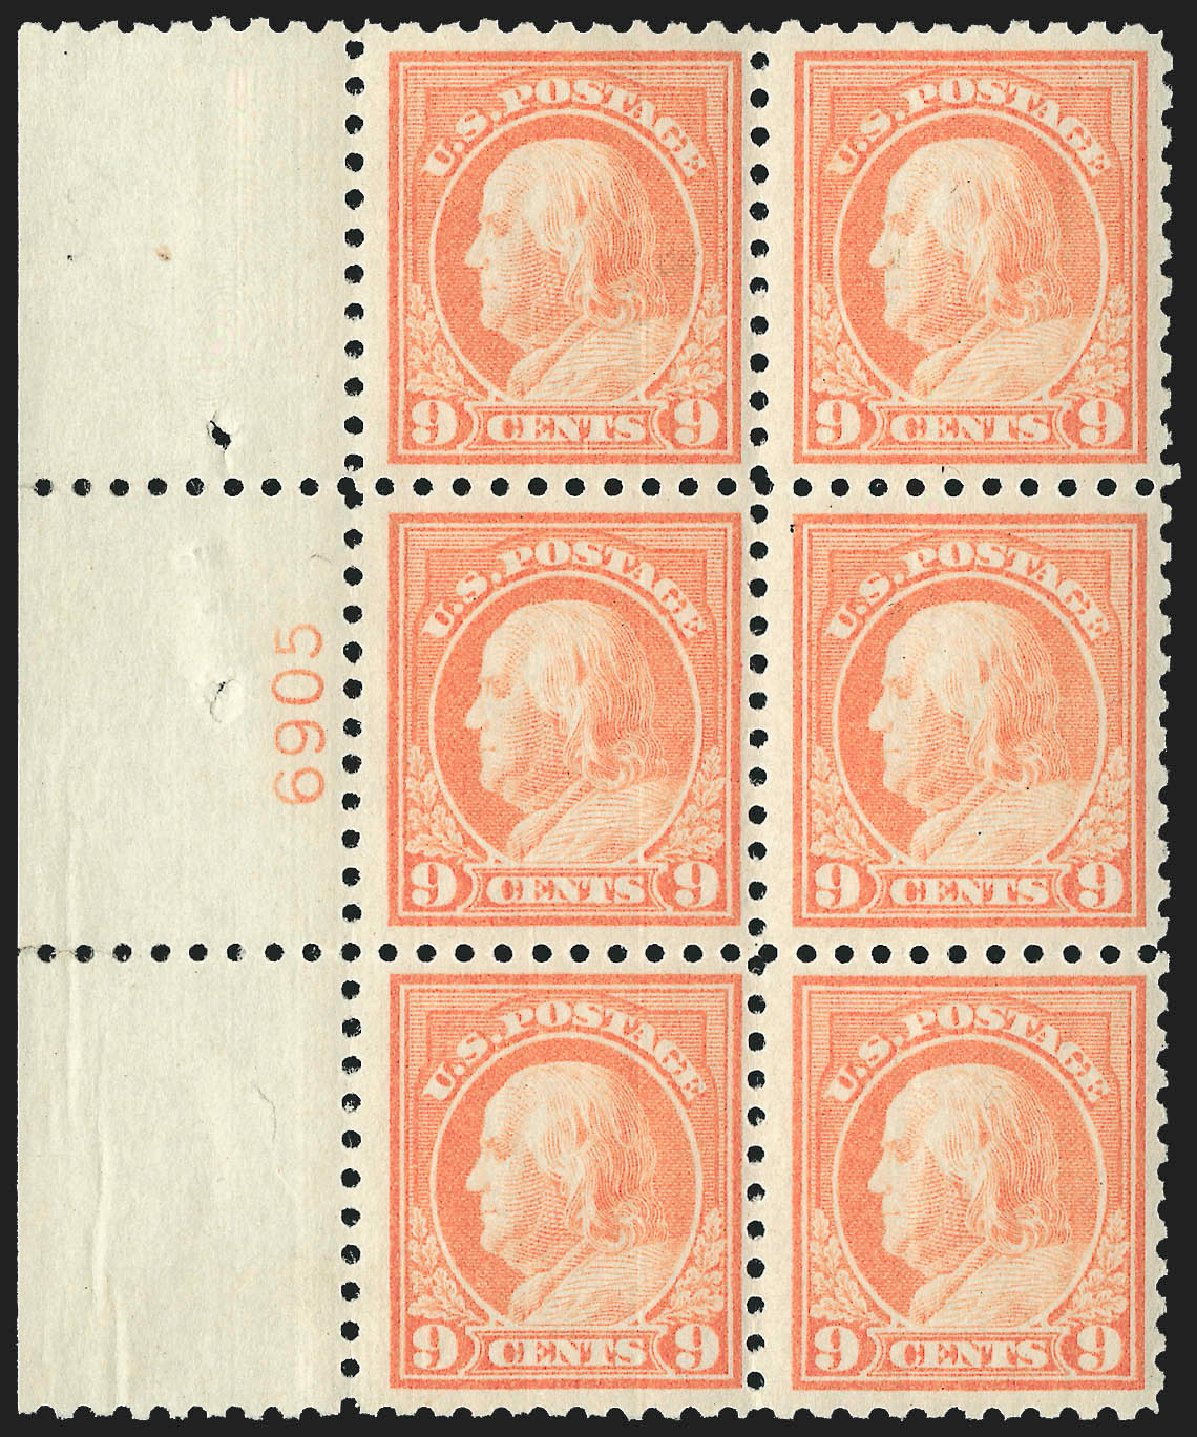 US Stamp Values Scott Catalogue 471: 9c 1916 Franklin Perf 10. Robert Siegel Auction Galleries, Jul 2015, Sale 1107, Lot 483